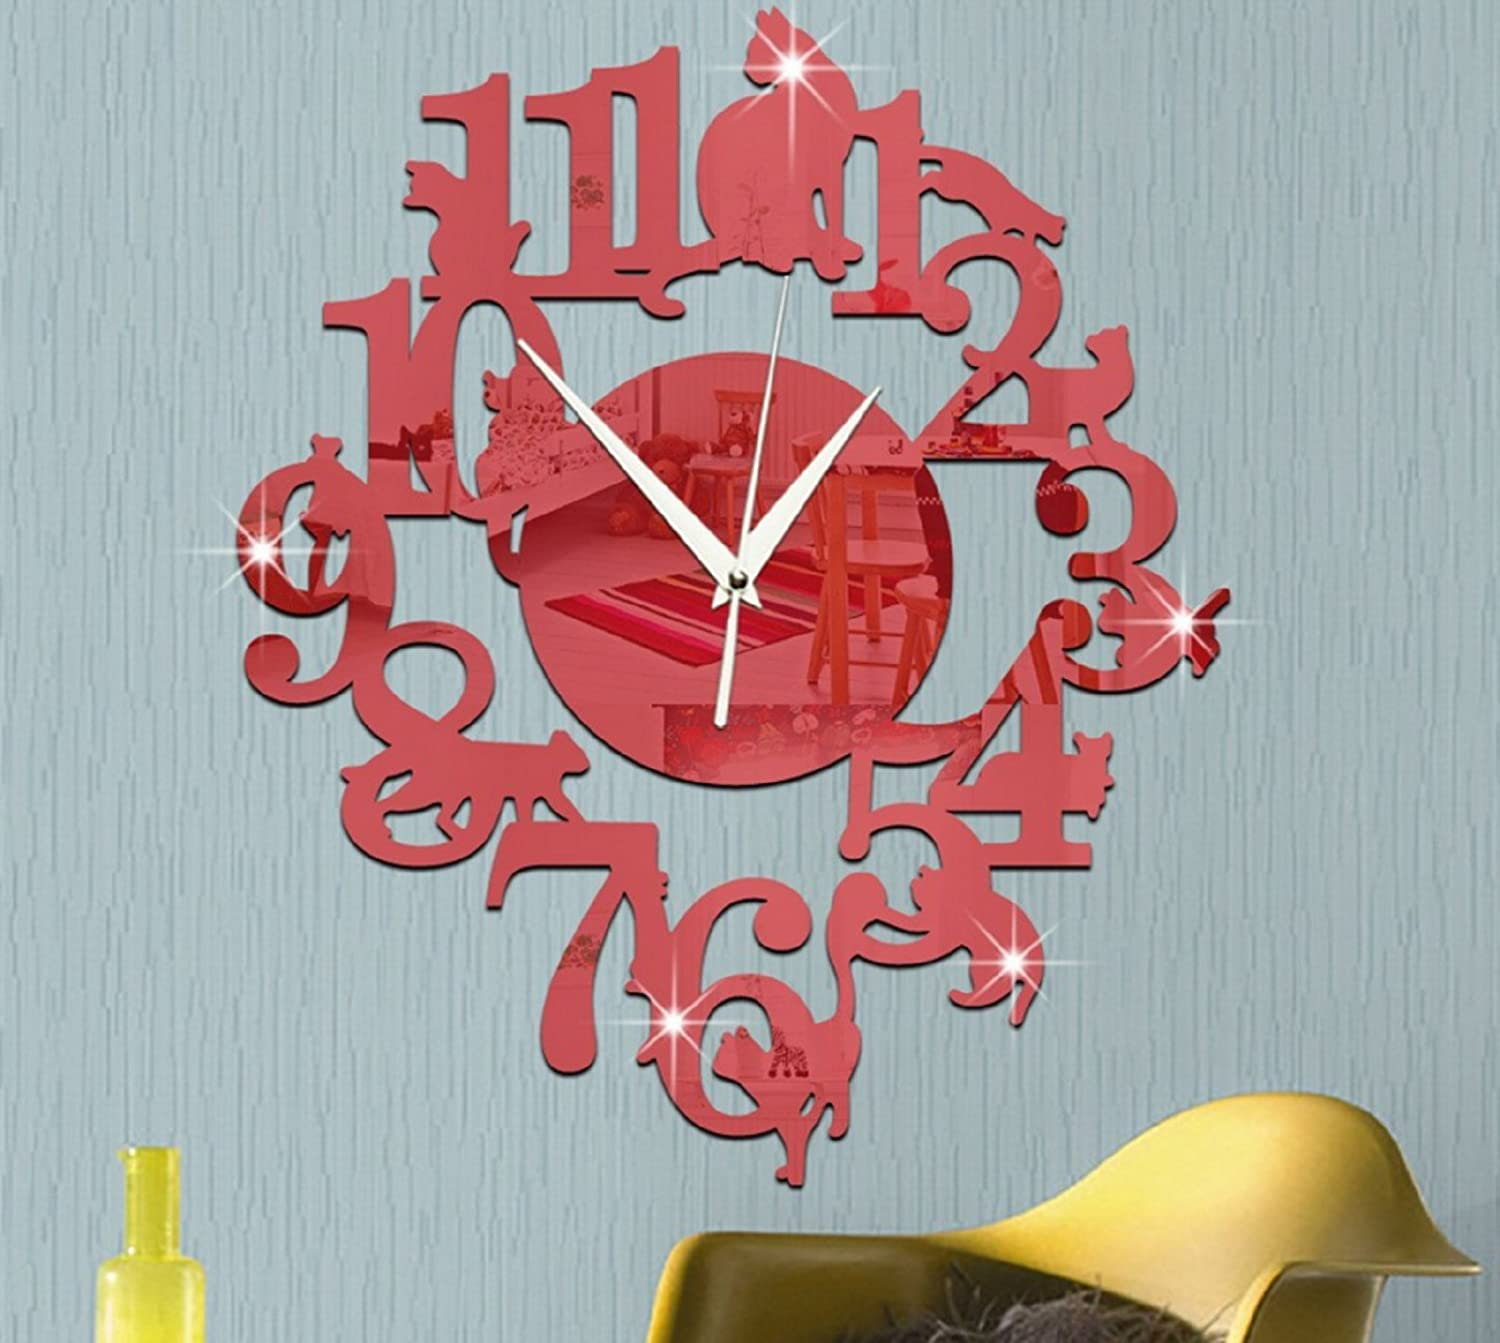 Amazon.com: (Red Color) NEW home decor wandklok creative wall watch reloj Acrylic Cats Lovery large 3d vintage wall clocks modern design murale reloj pared: ...